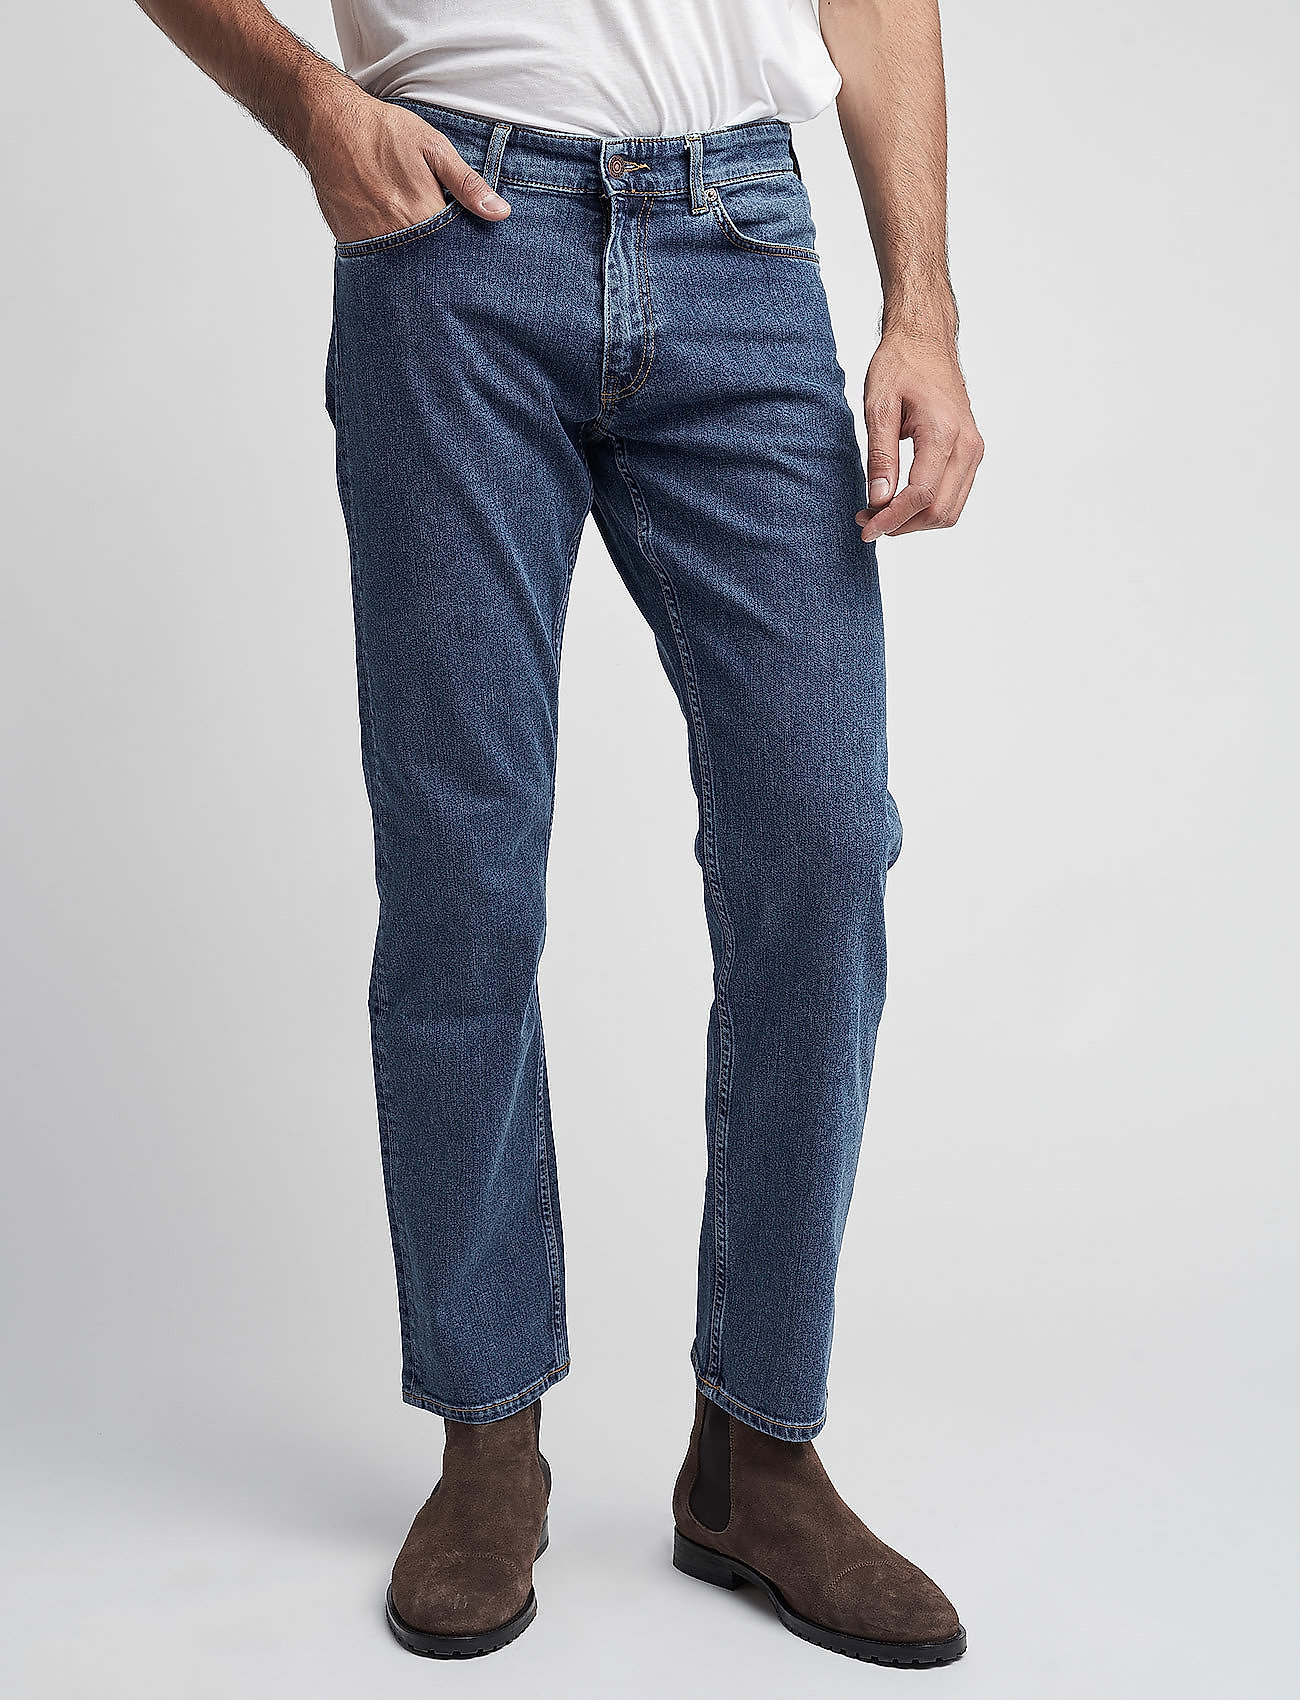 GANT - D1. REGULAR 11 OZ JEANS - regular jeans - mid blue - 0